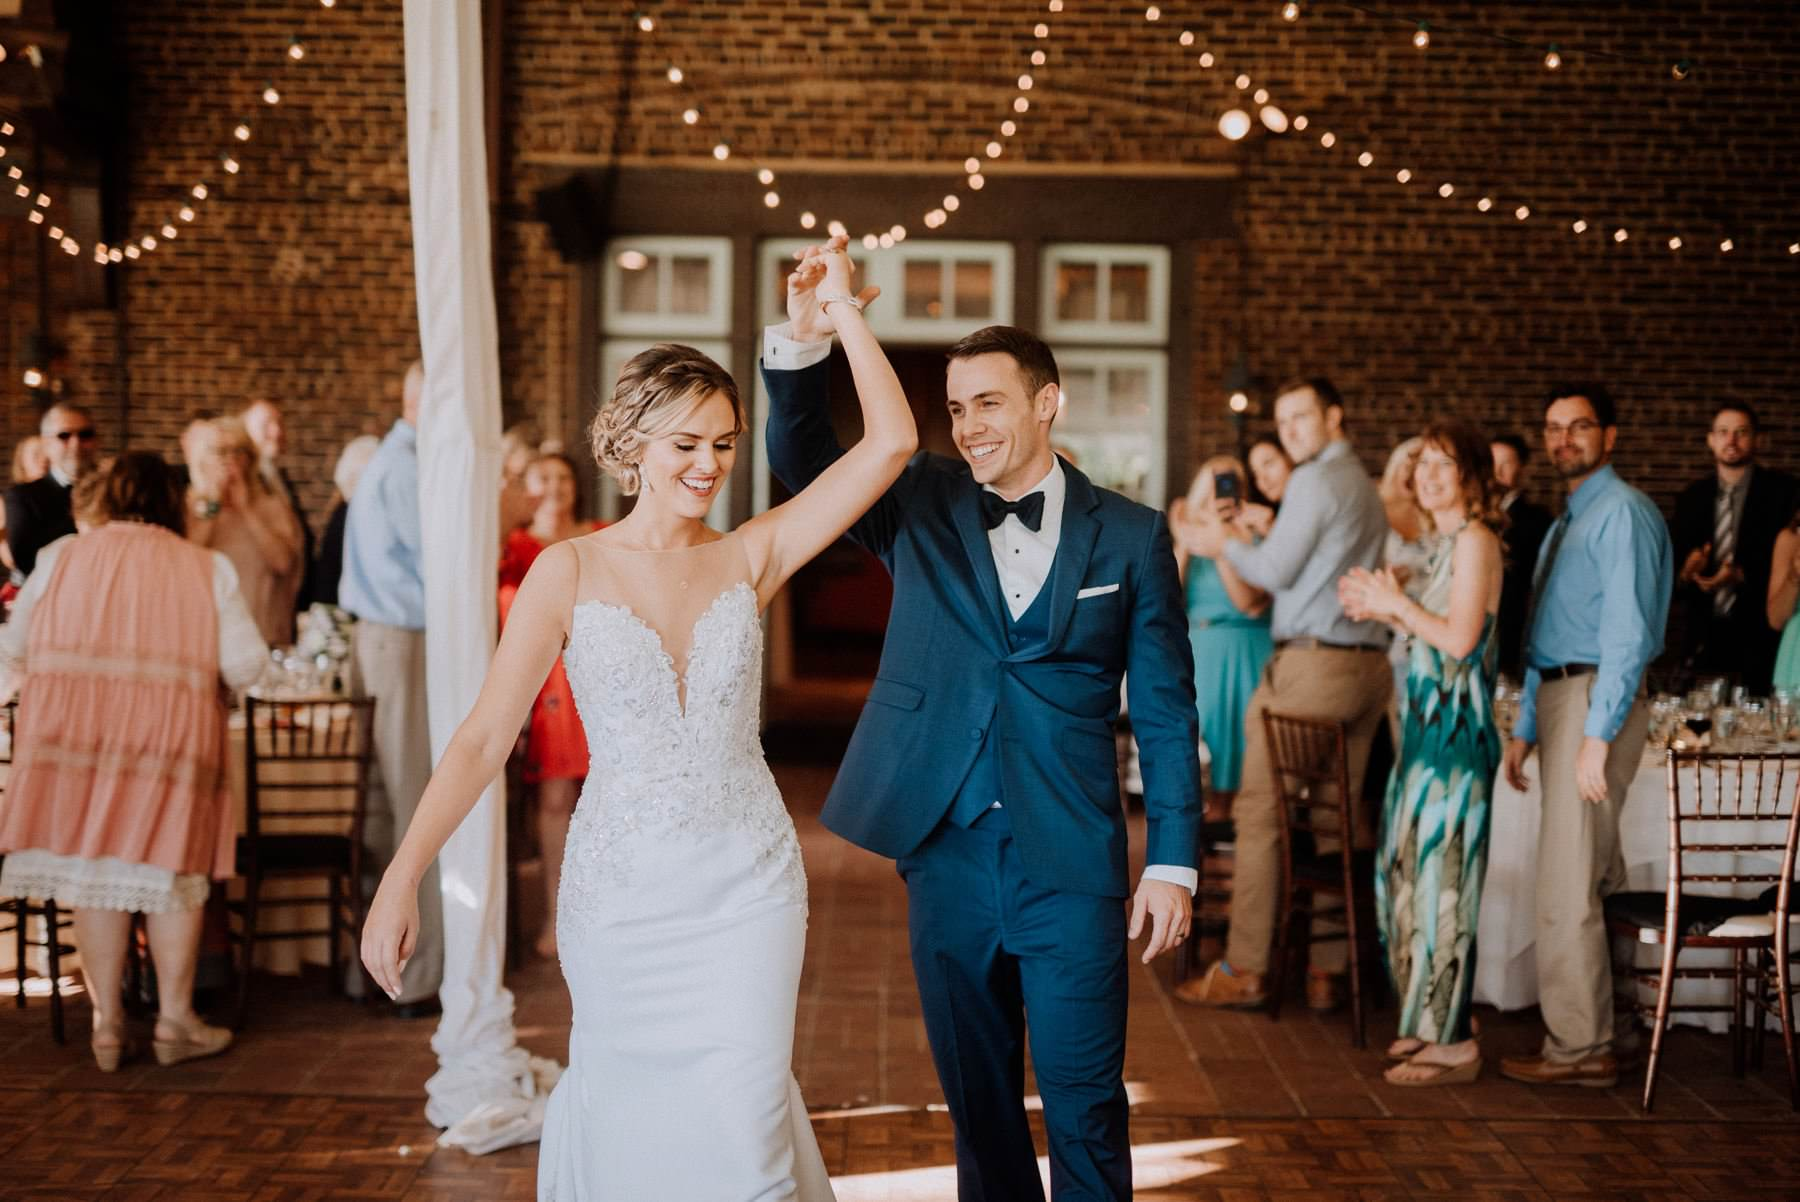 greenville-country-club-wedding-photographer-65.jpg